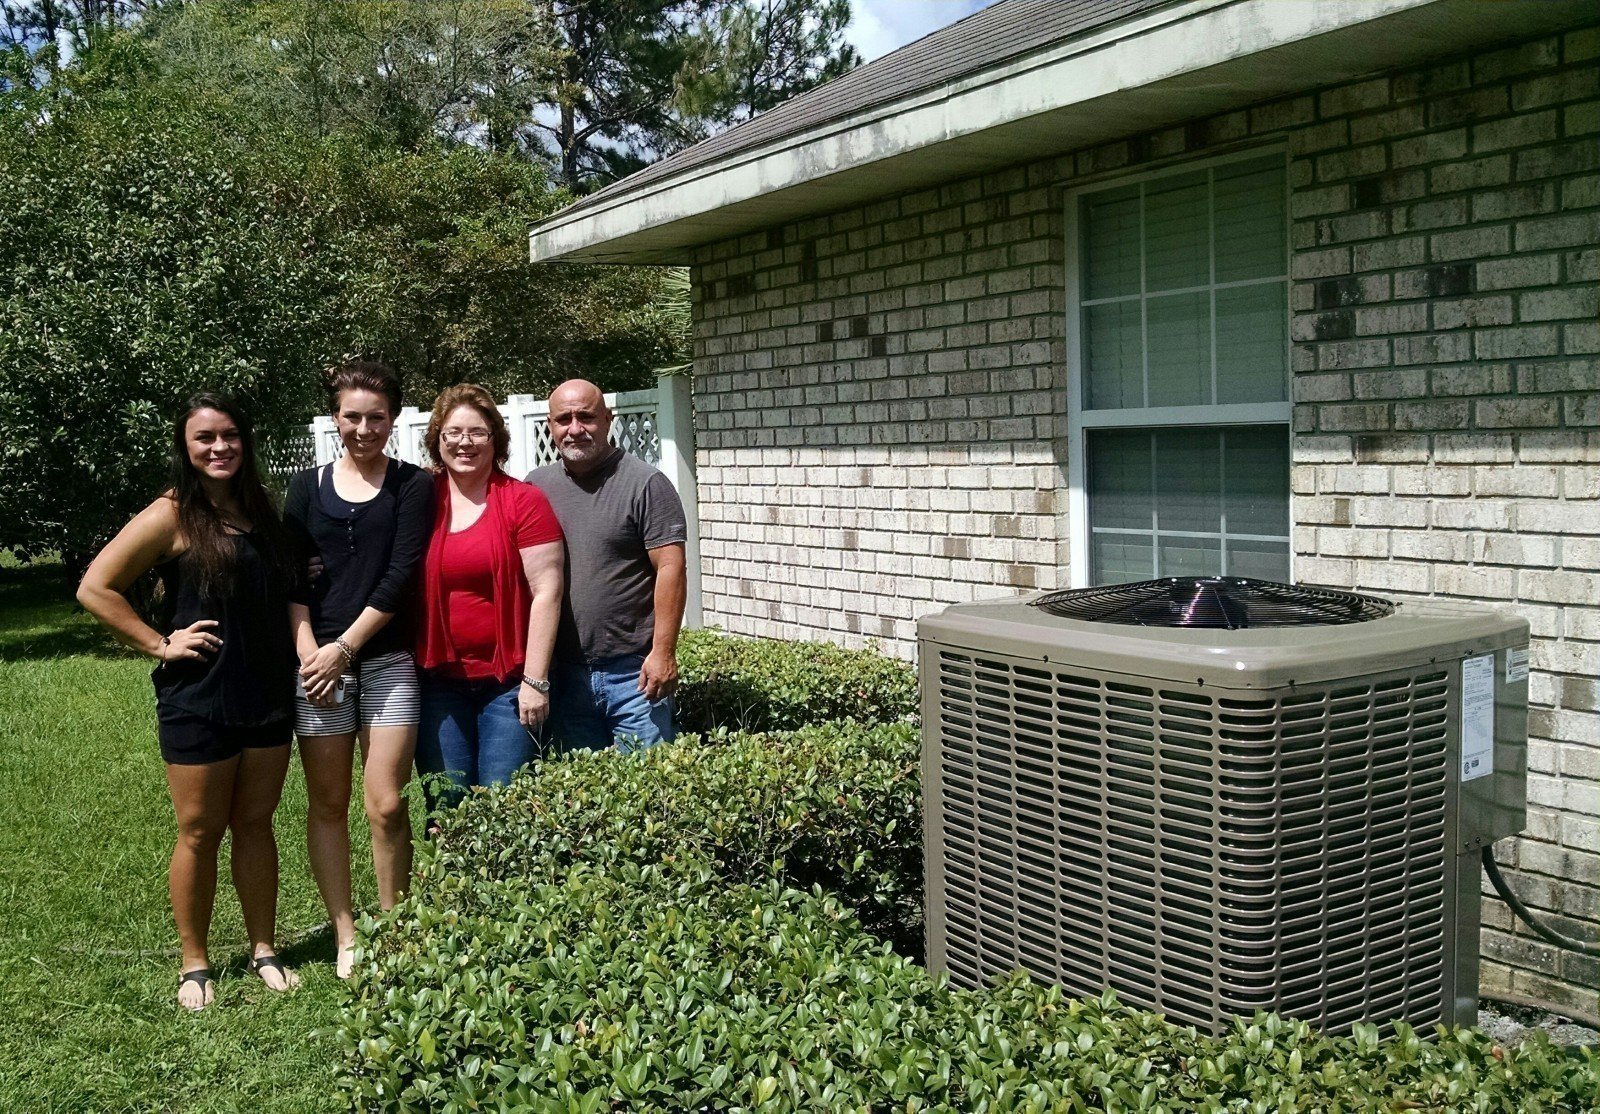 The Gomez family with a new 15 seer York heat pump system